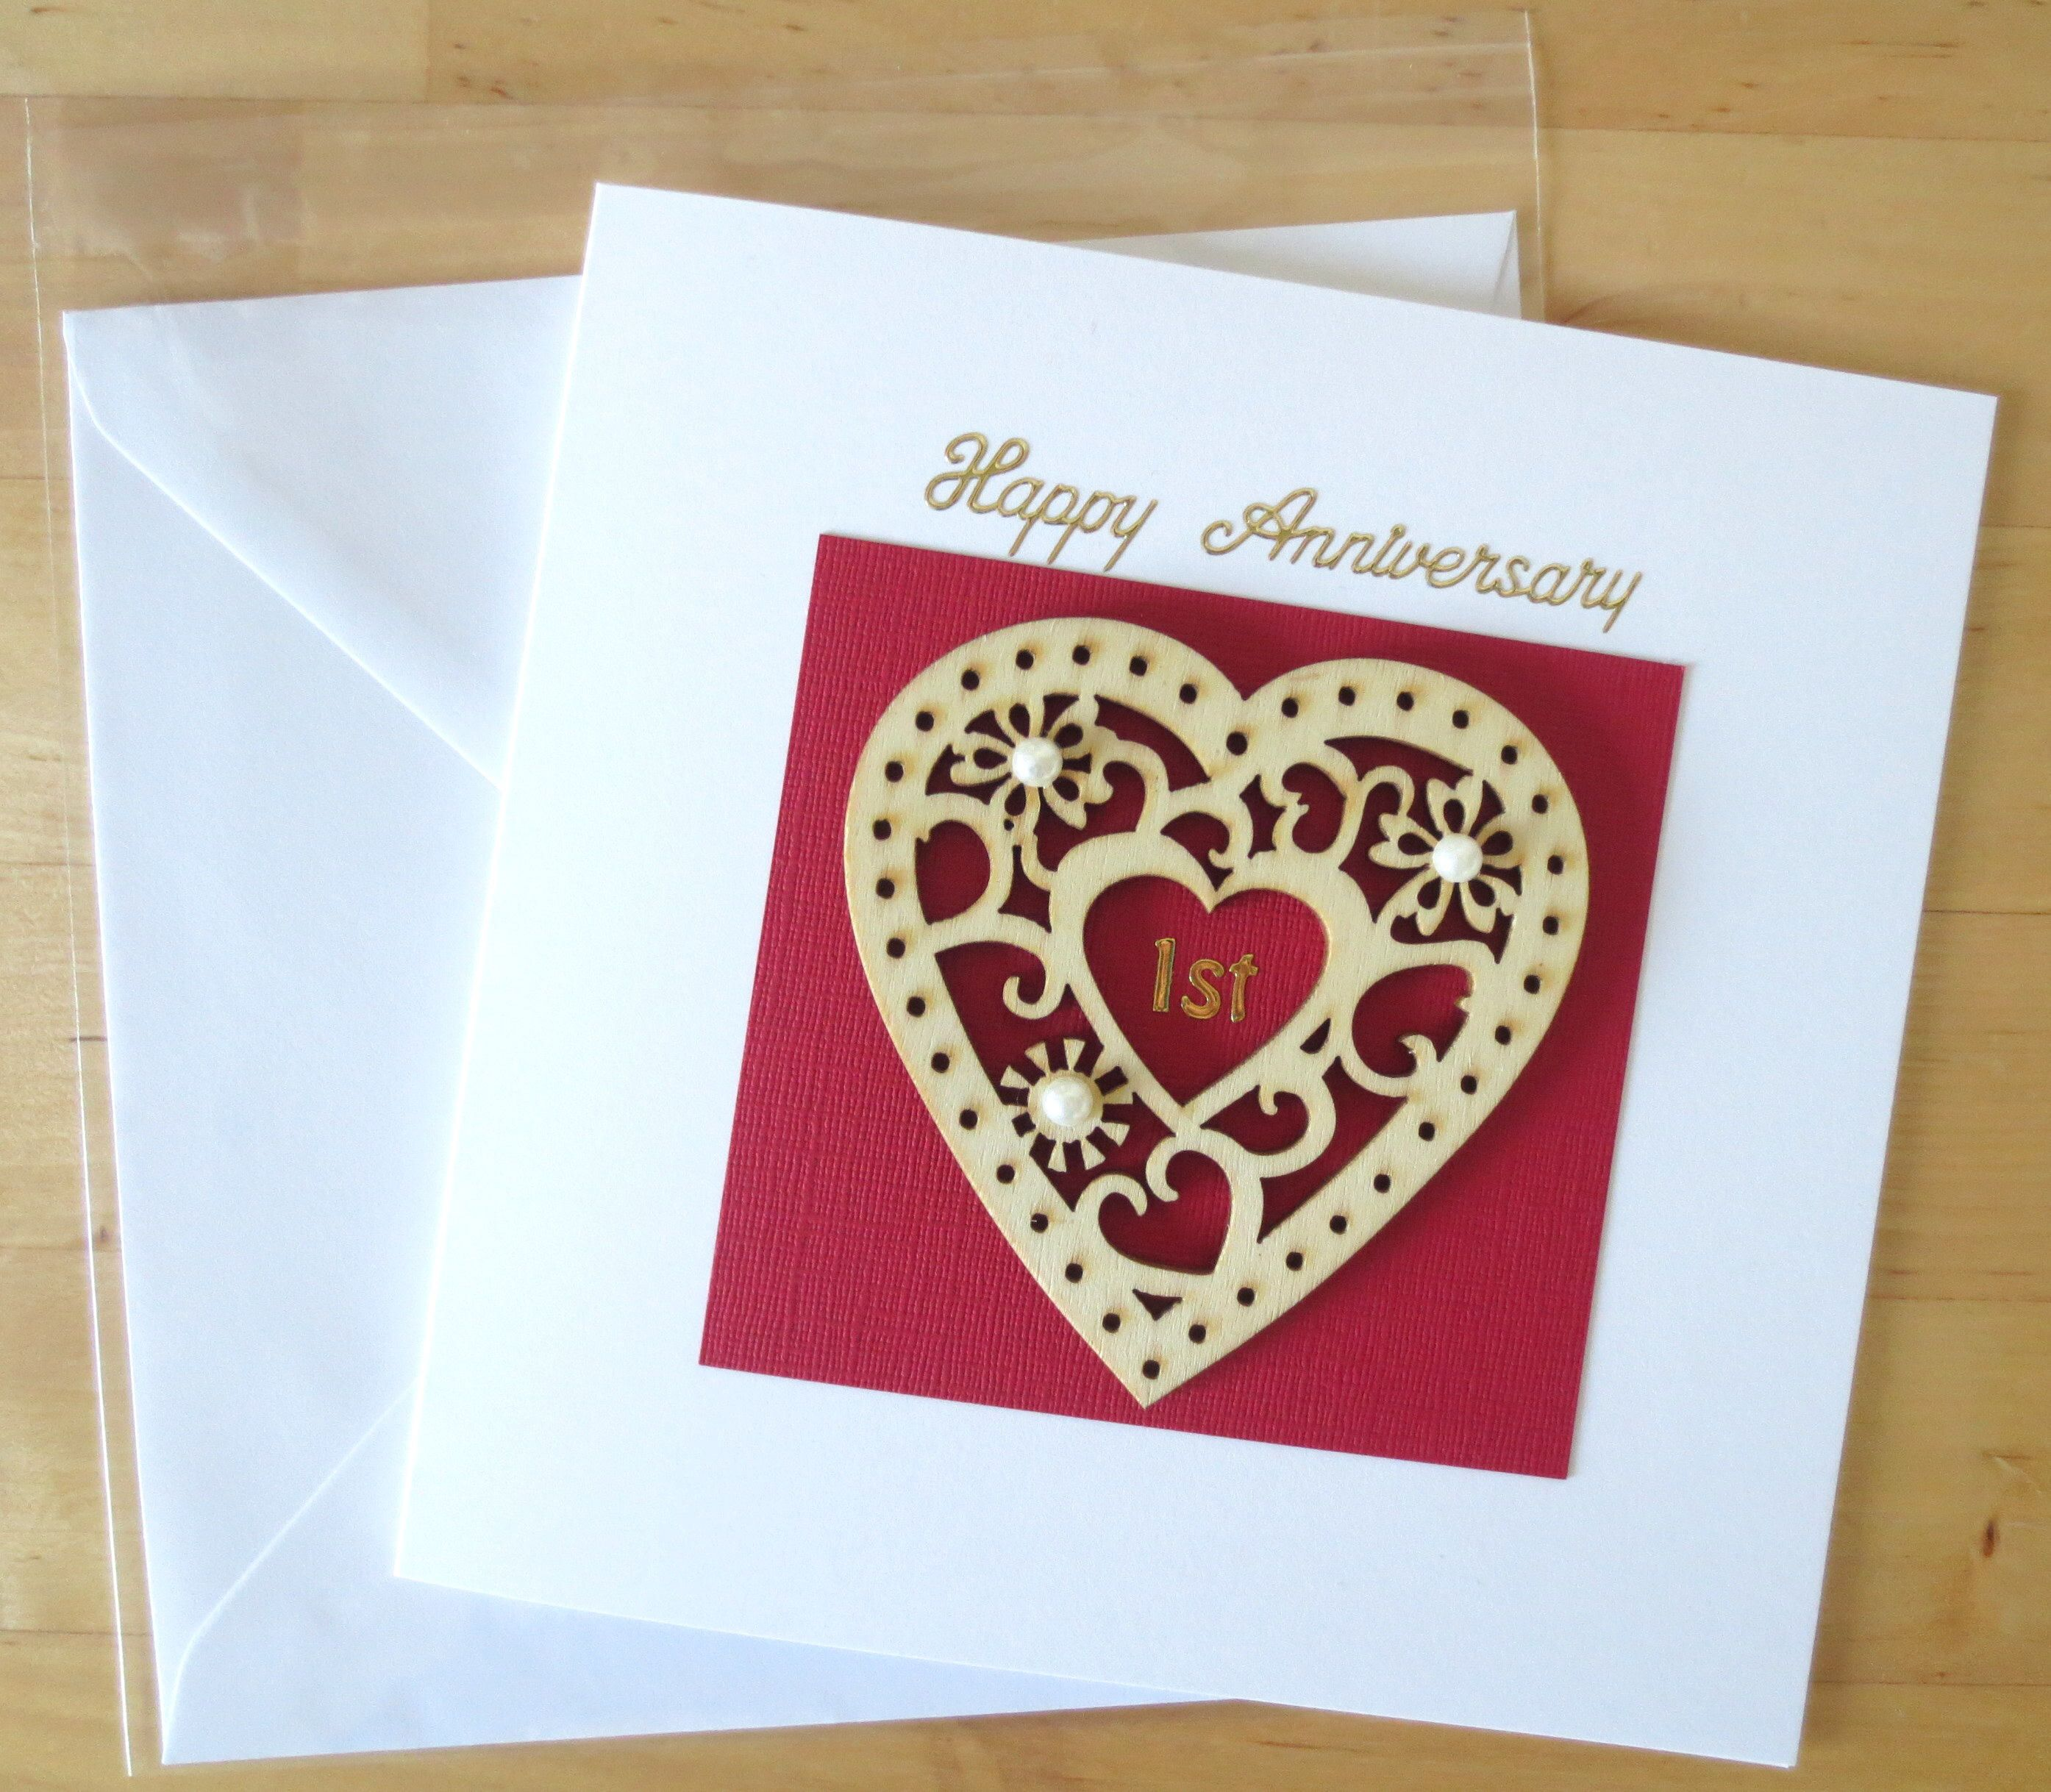 5th Wedding Anniversary Gift Ideas For Husband: Wooden Anniversary Card Gift, First 1st Anniversary Card